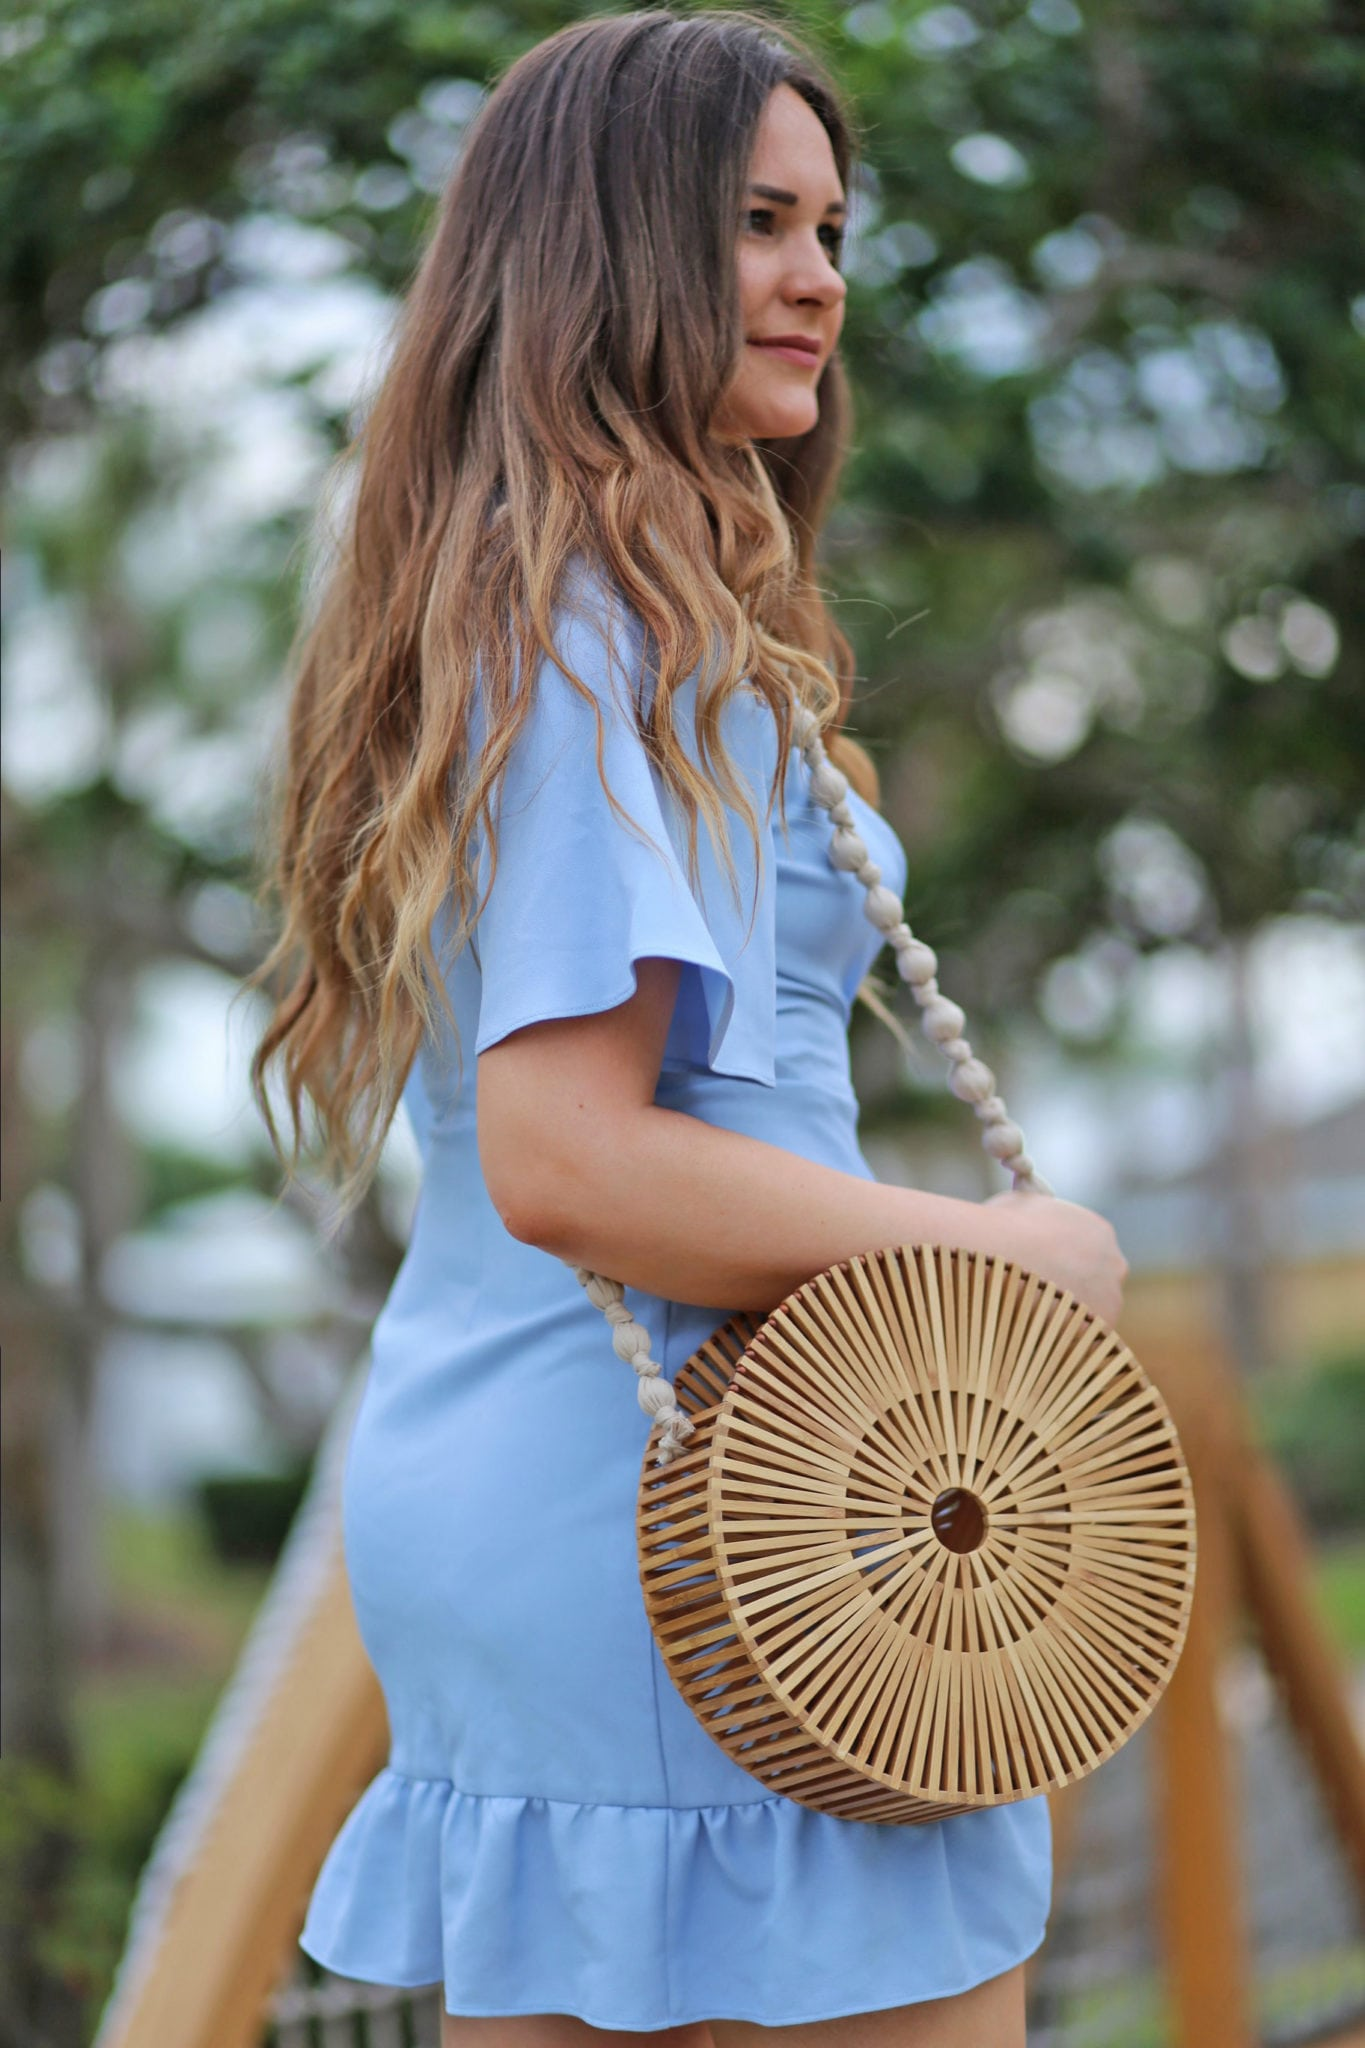 5 hacks to beat the heat and humidity | summer hair | summer outfit | Mash Elle beauty blogger | blue dress sandals